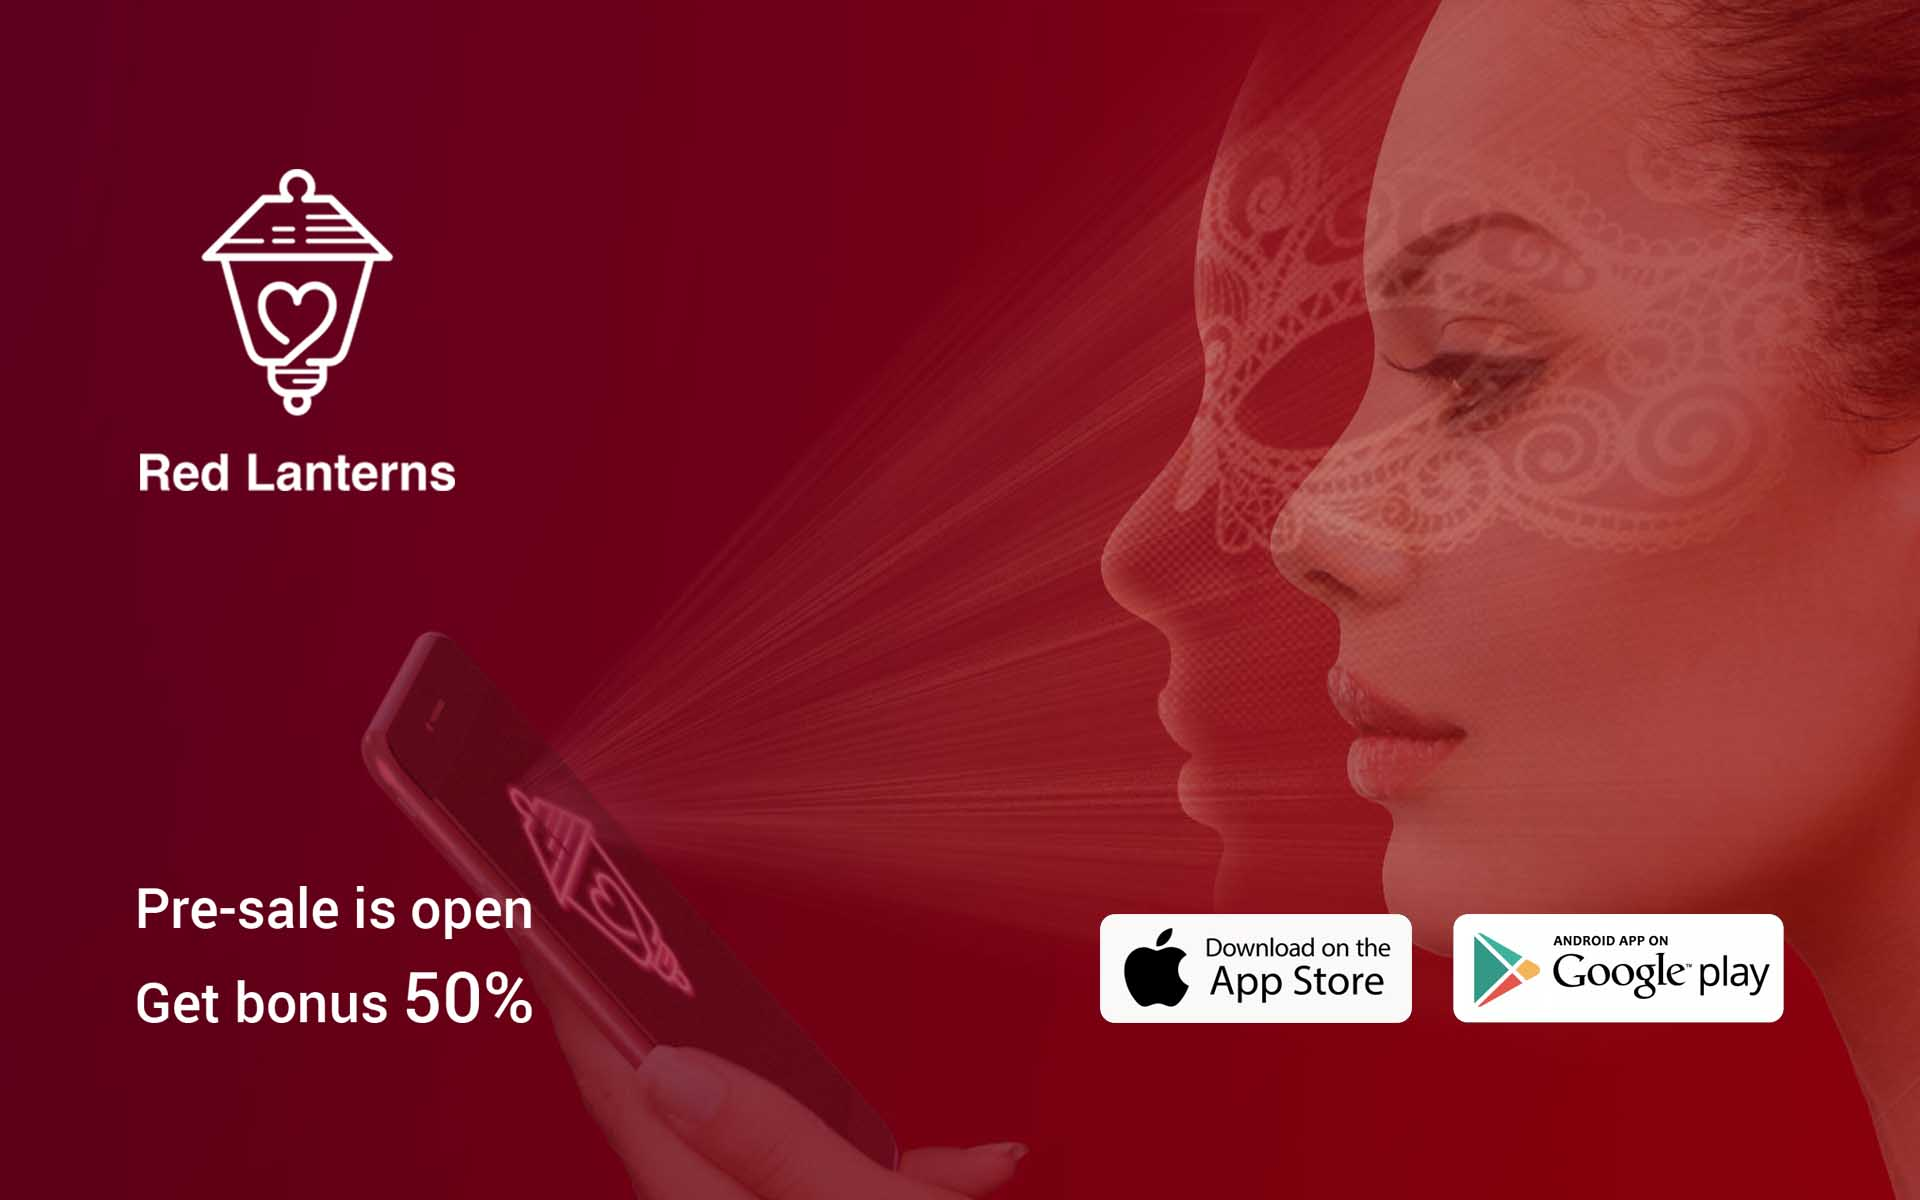 Let's Talk About Sex! Red Lanterns Launches Pre-ICO on Valentine's Day